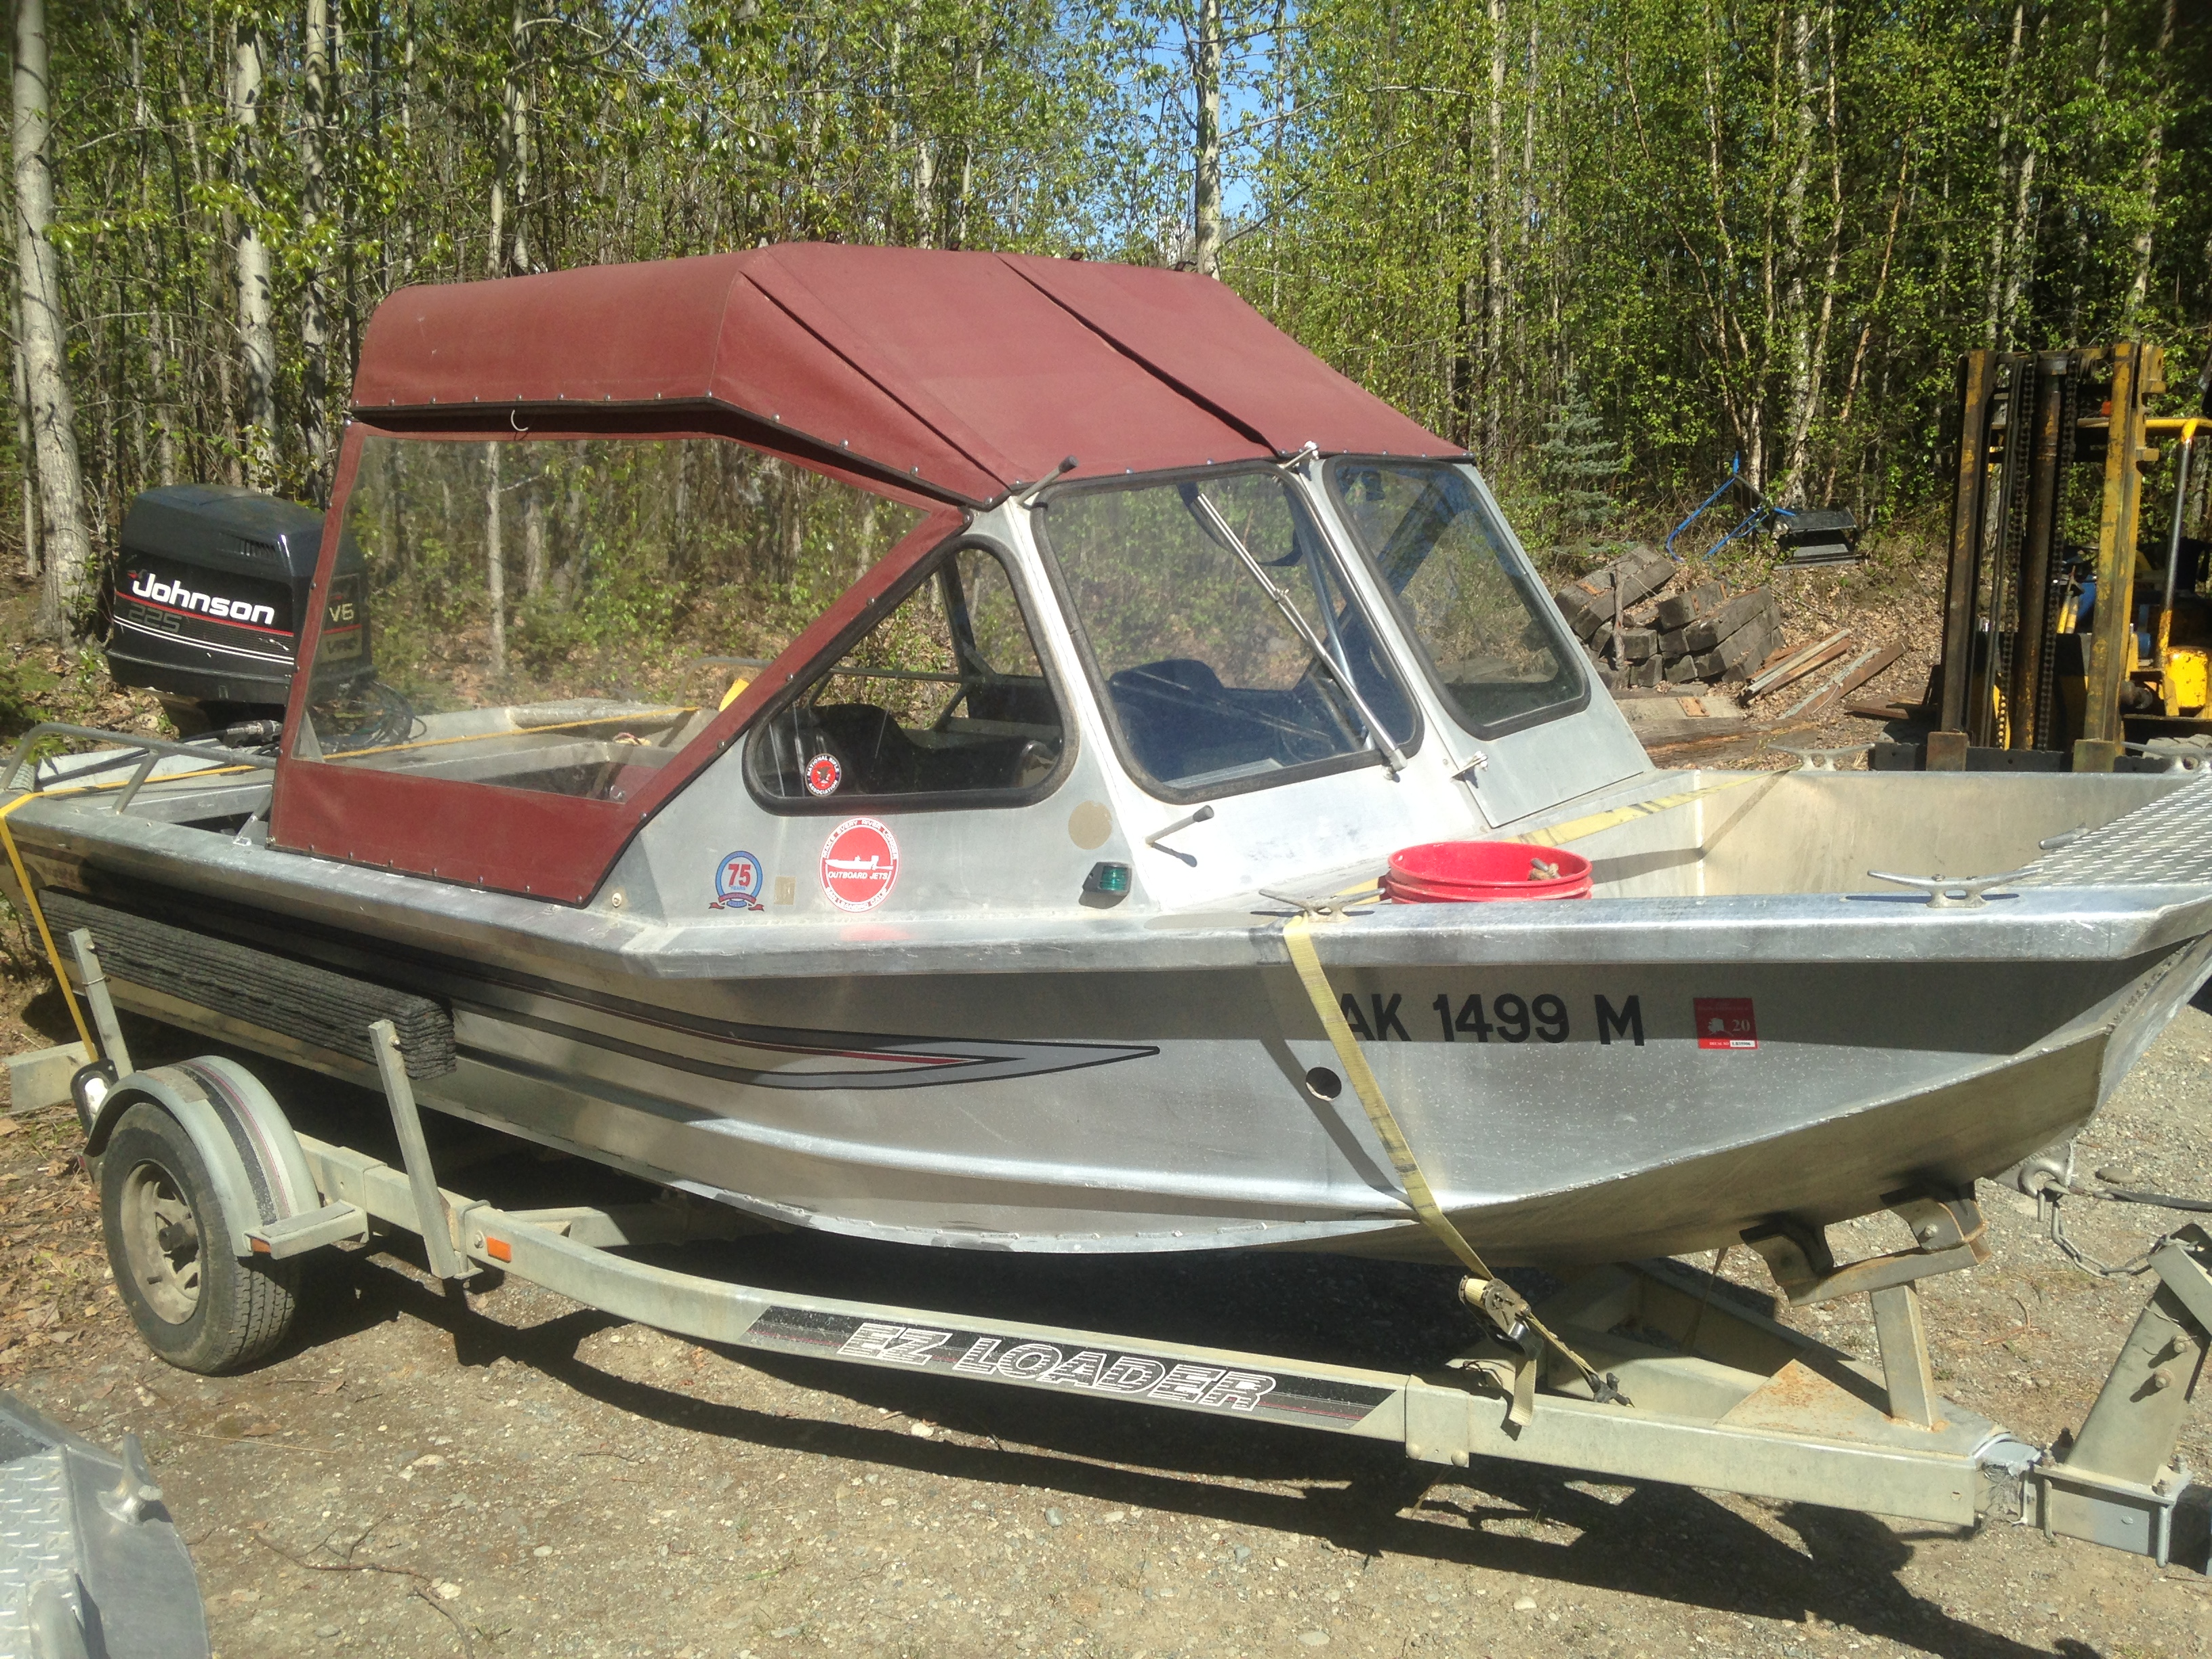 1990 Wooldridge XP 18' outboard Jet boat